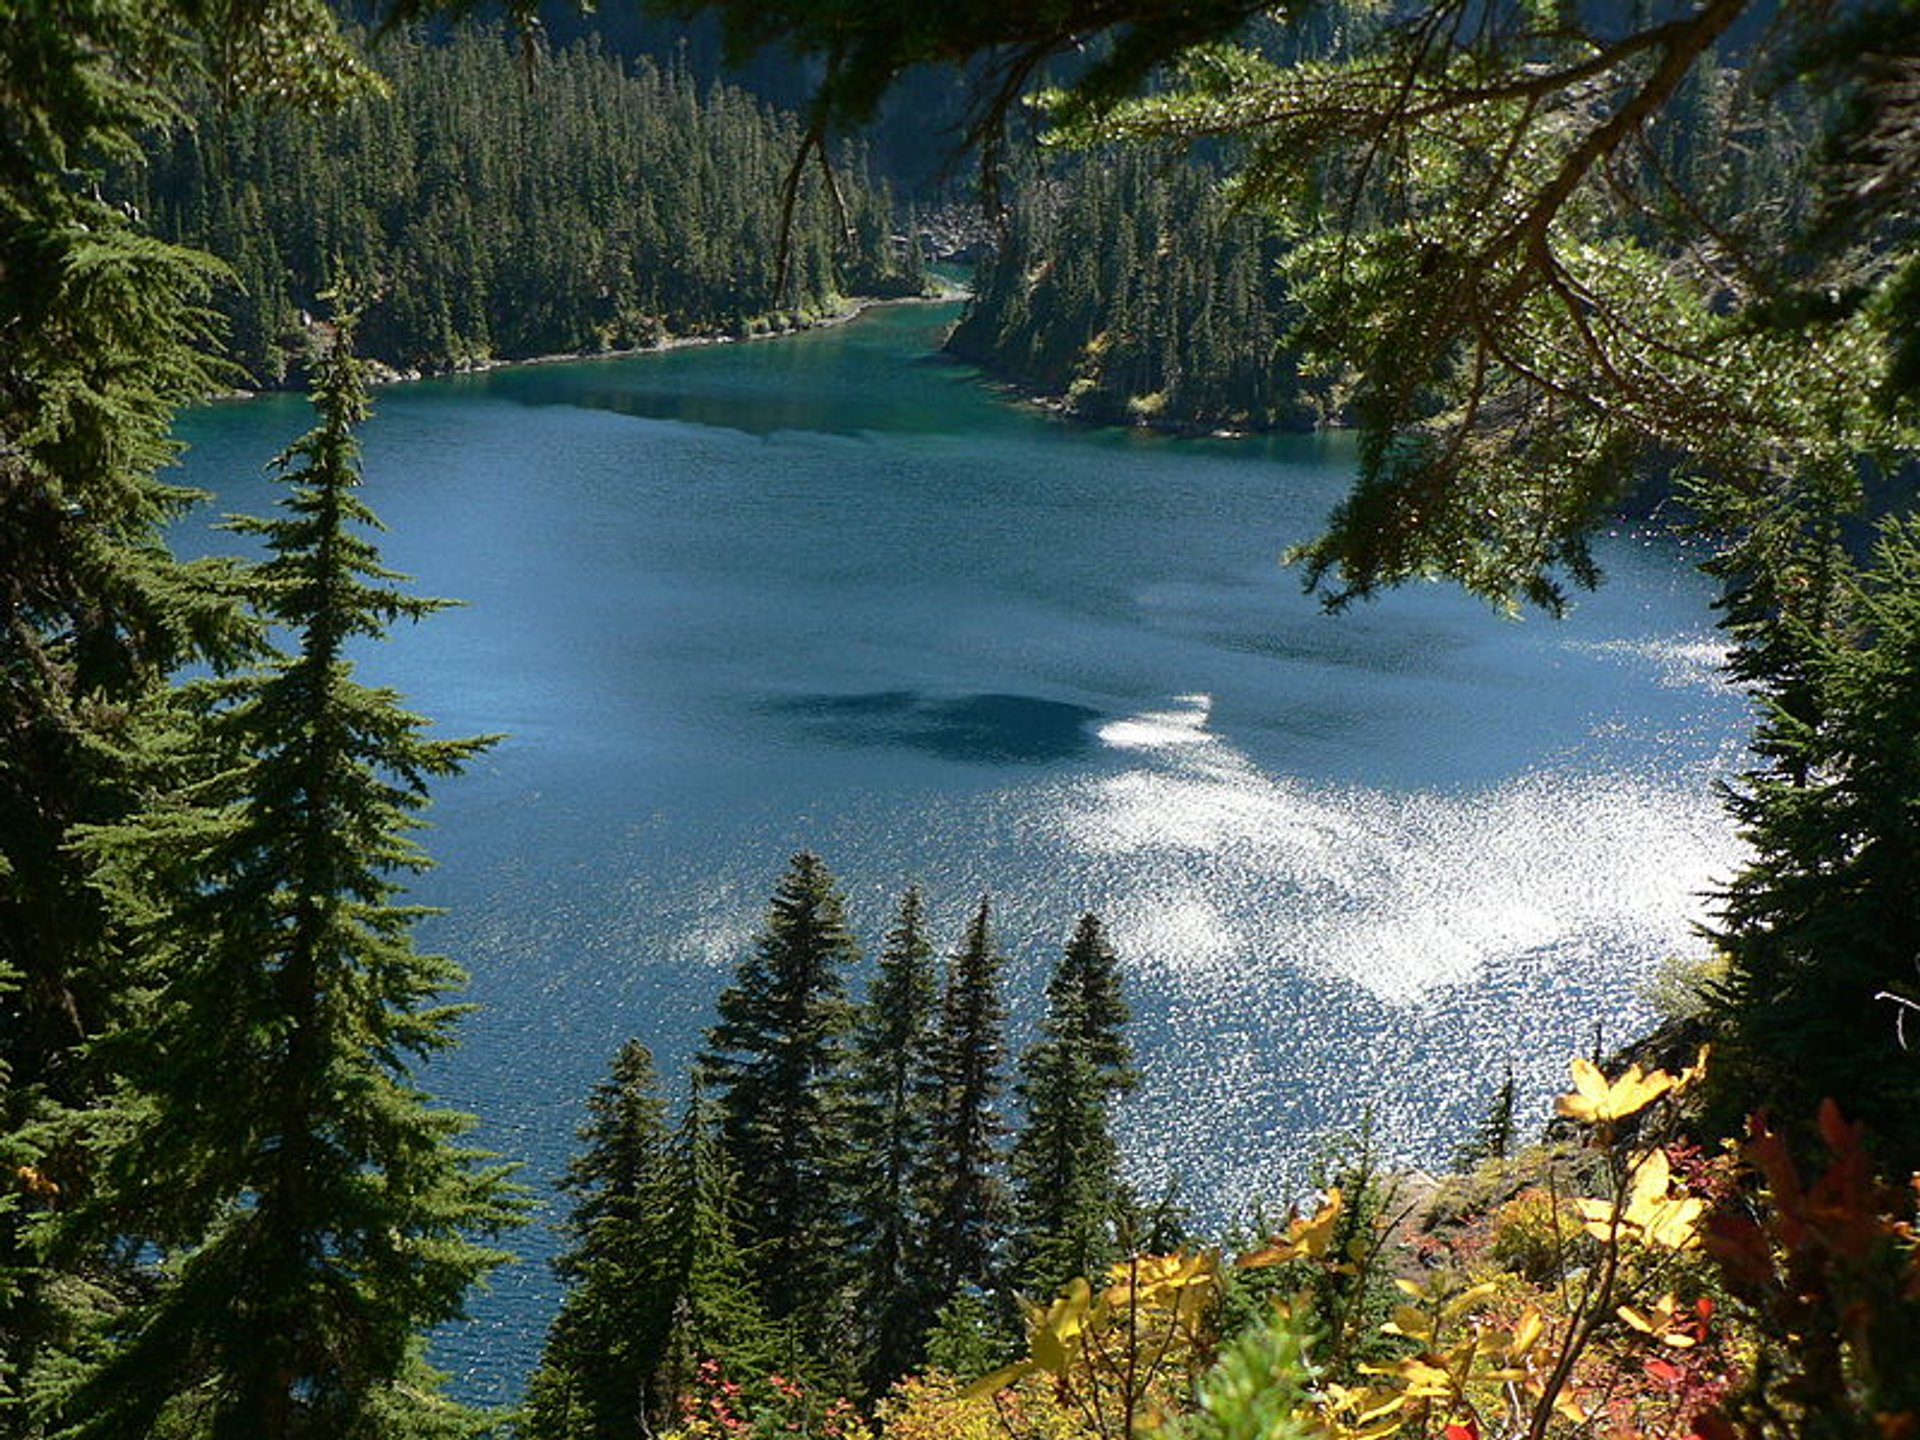 Rachel Lake 4640+ feet, Subalpine Fir and Mountain Hemlock forest 2020